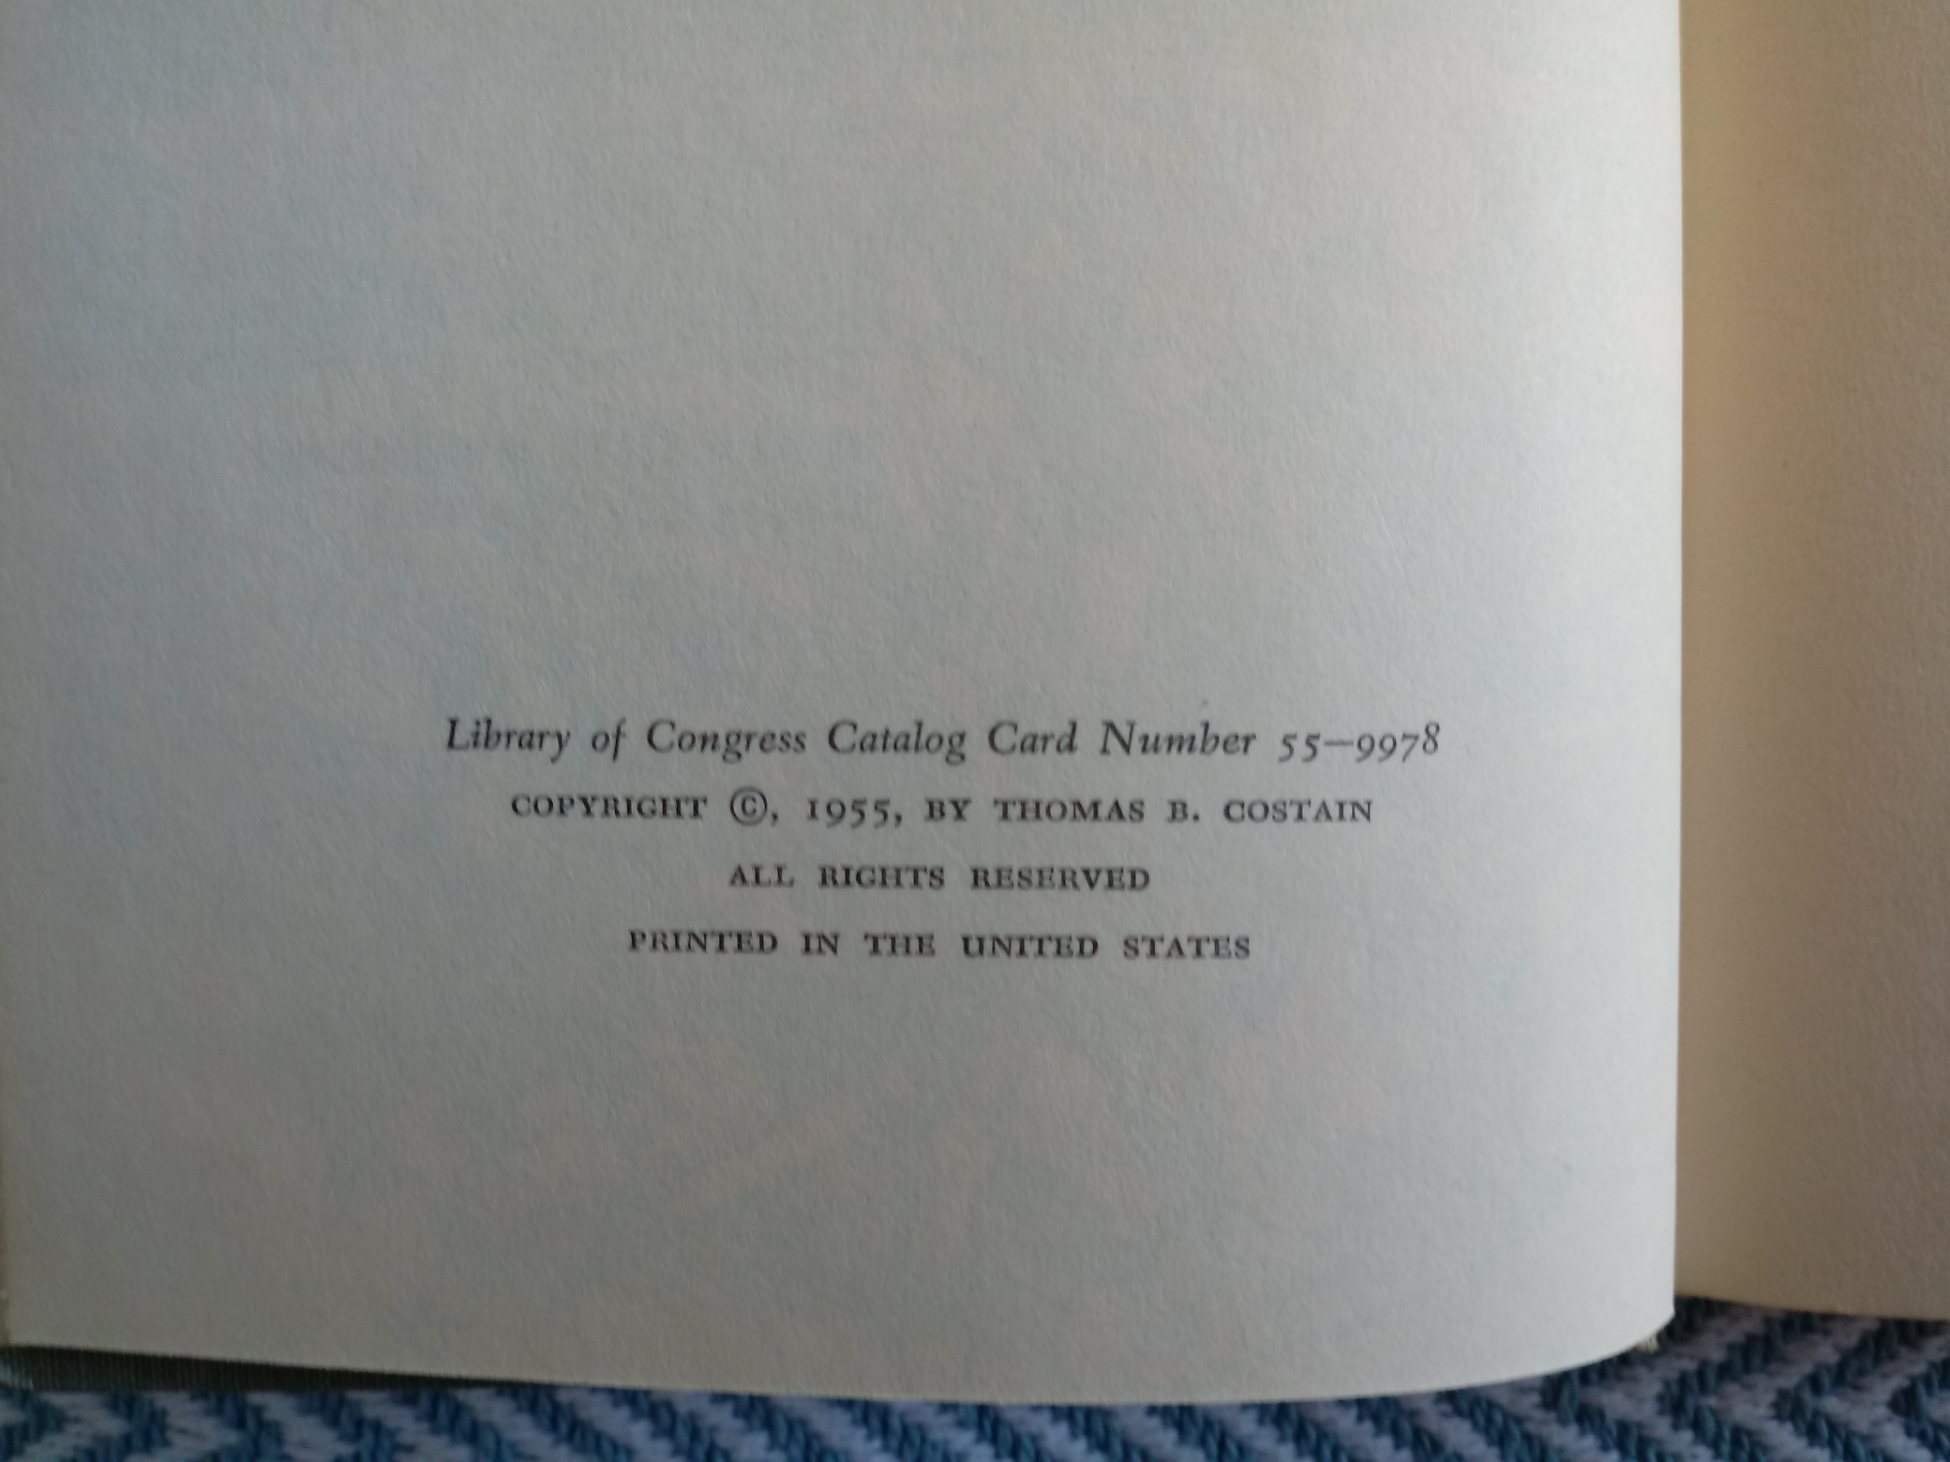 2 x The Tontine Volumes 1&2 by Thomas B. Costain hardback books 465 and 930 pages with inscription - Image 8 of 8